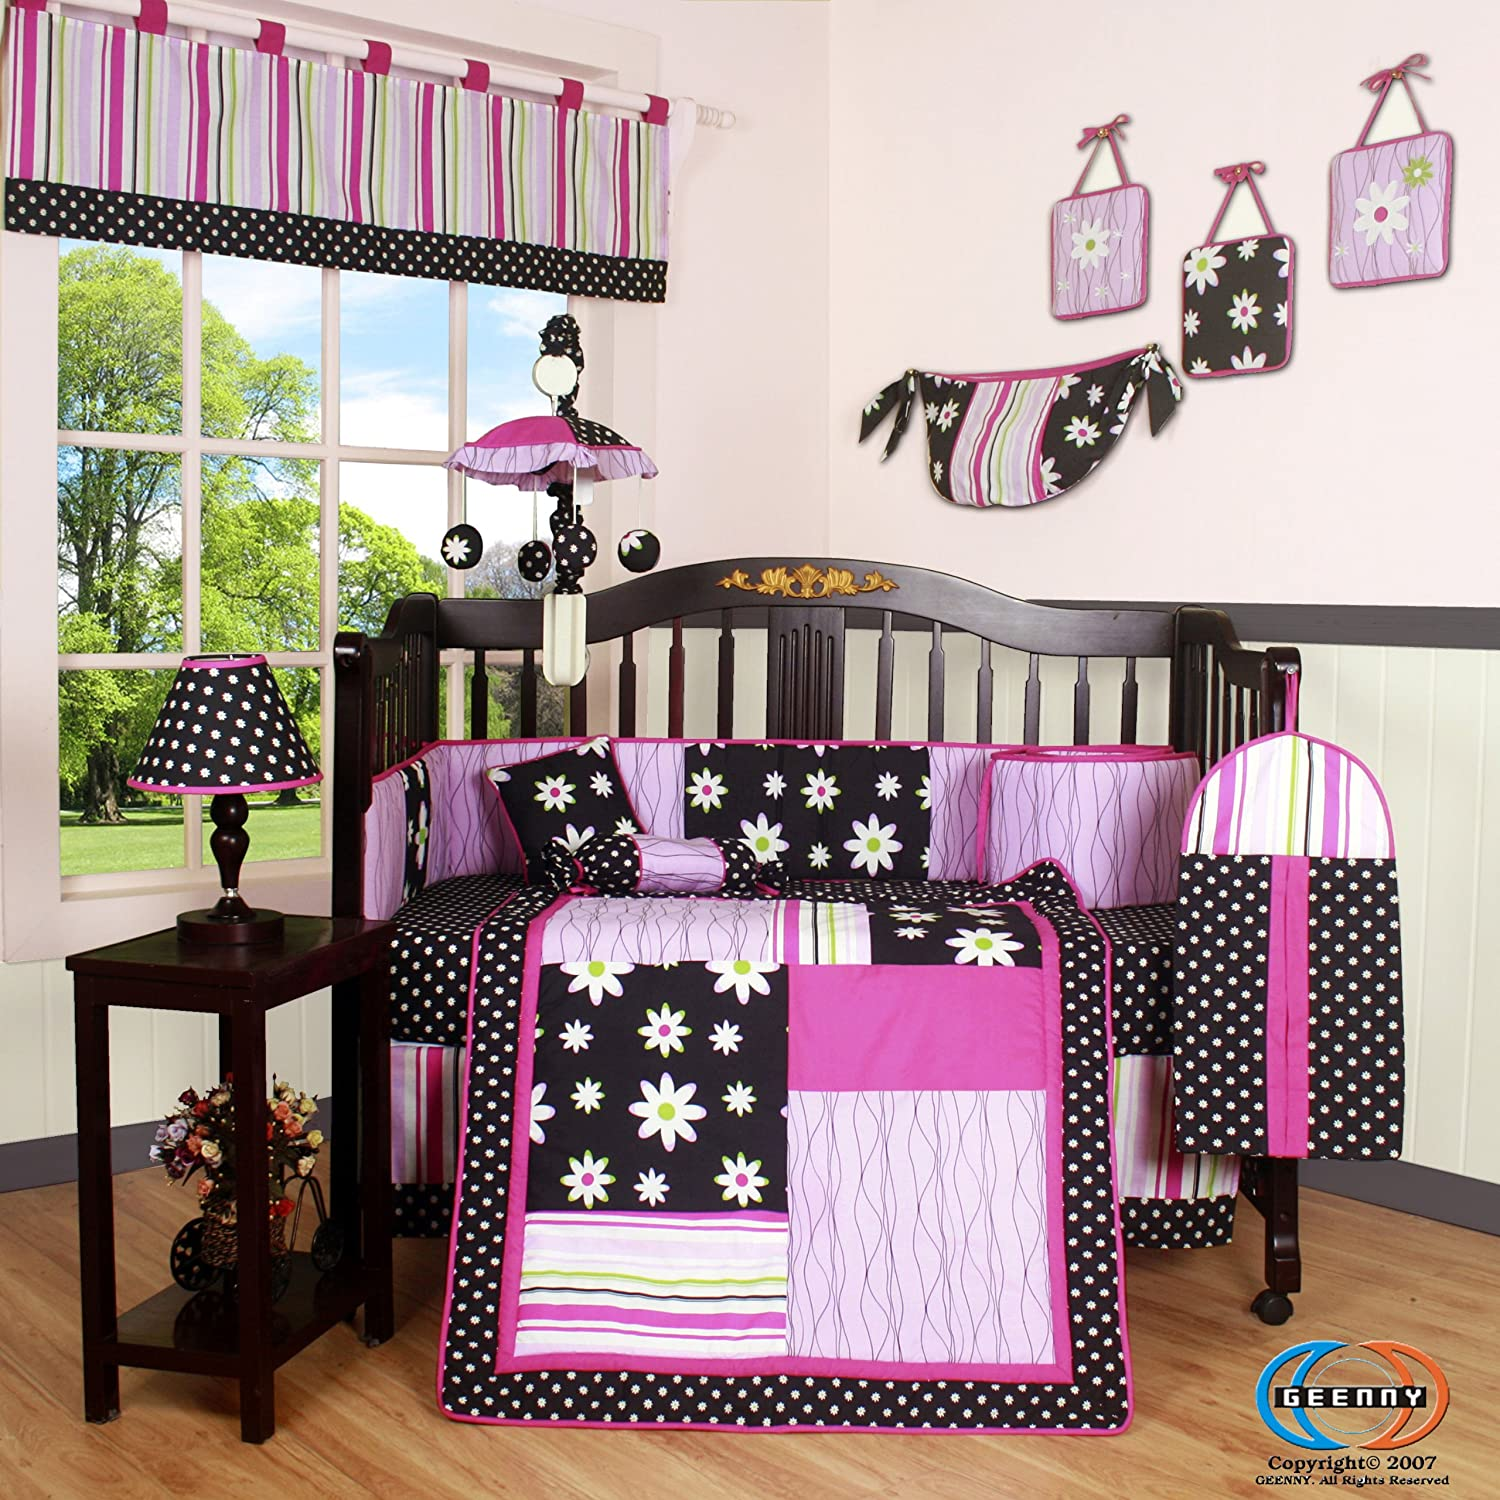 Geenny Boutique Charming Flower Baby Bedding Collection